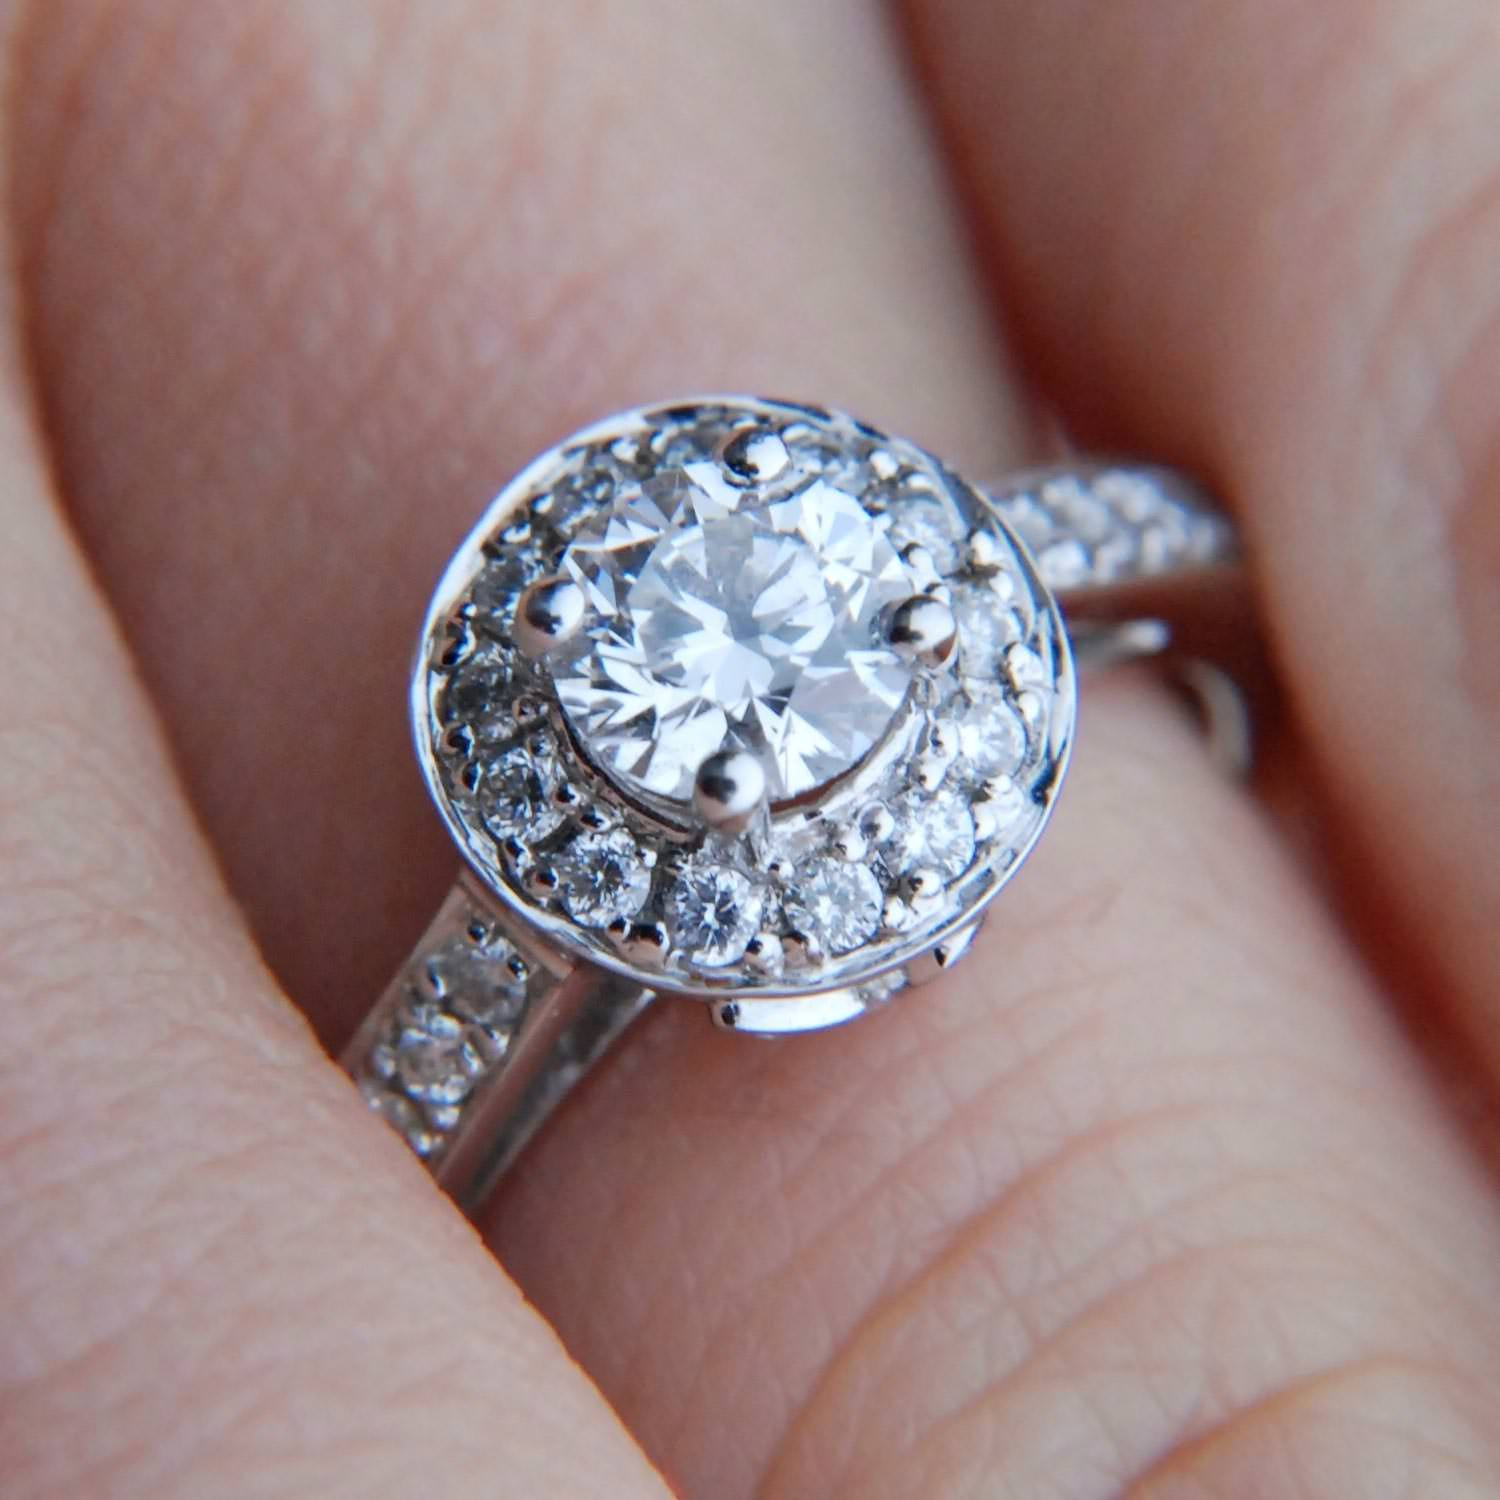 what is a halo ring halo wedding ring This ring style offers a whole host of options for creating big diamond looks as well as ways to personalize and customize your engagement ring